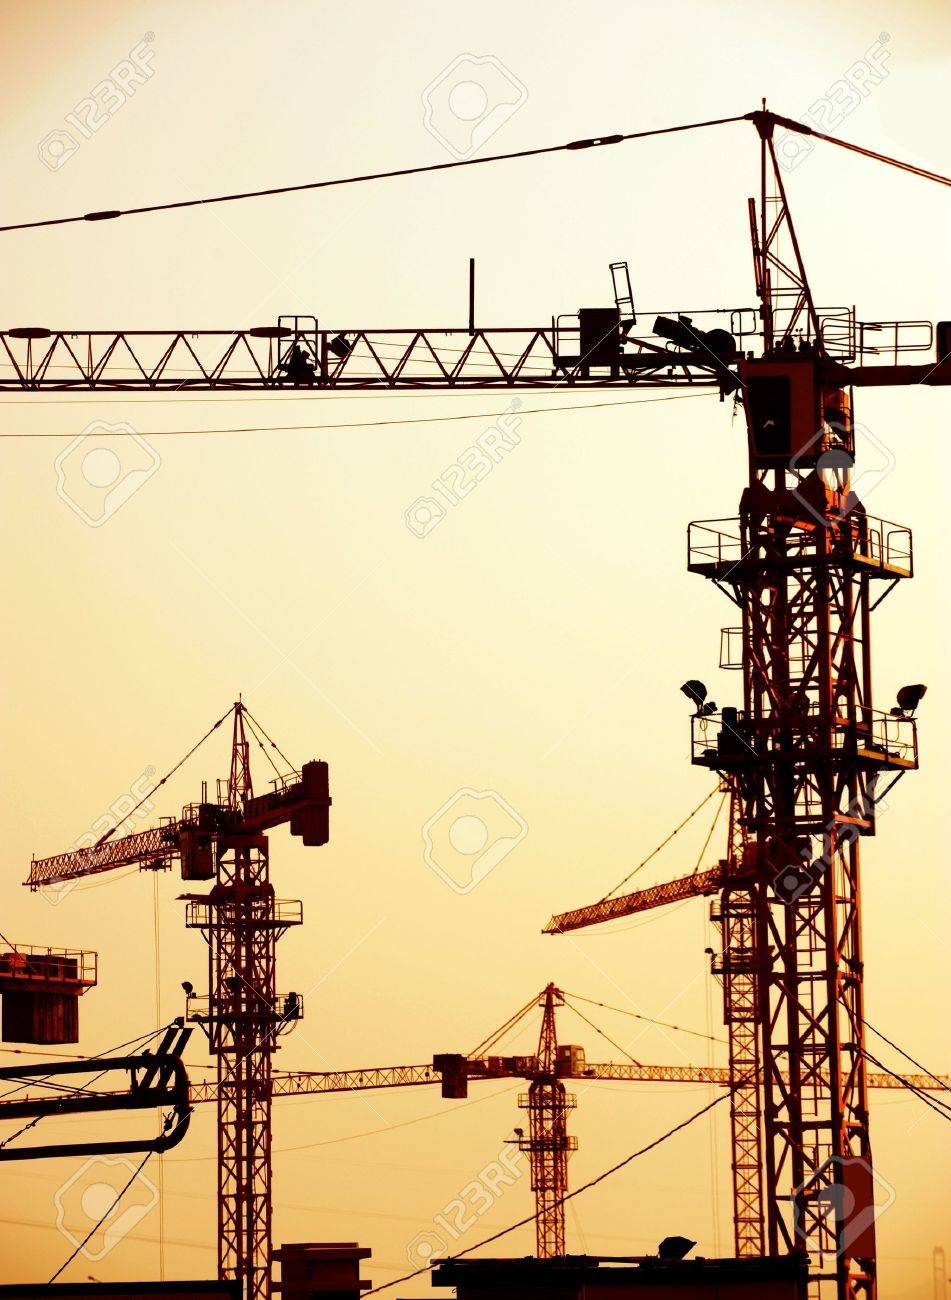 Cranes on a construction site in China. Stock Photo - 13695262